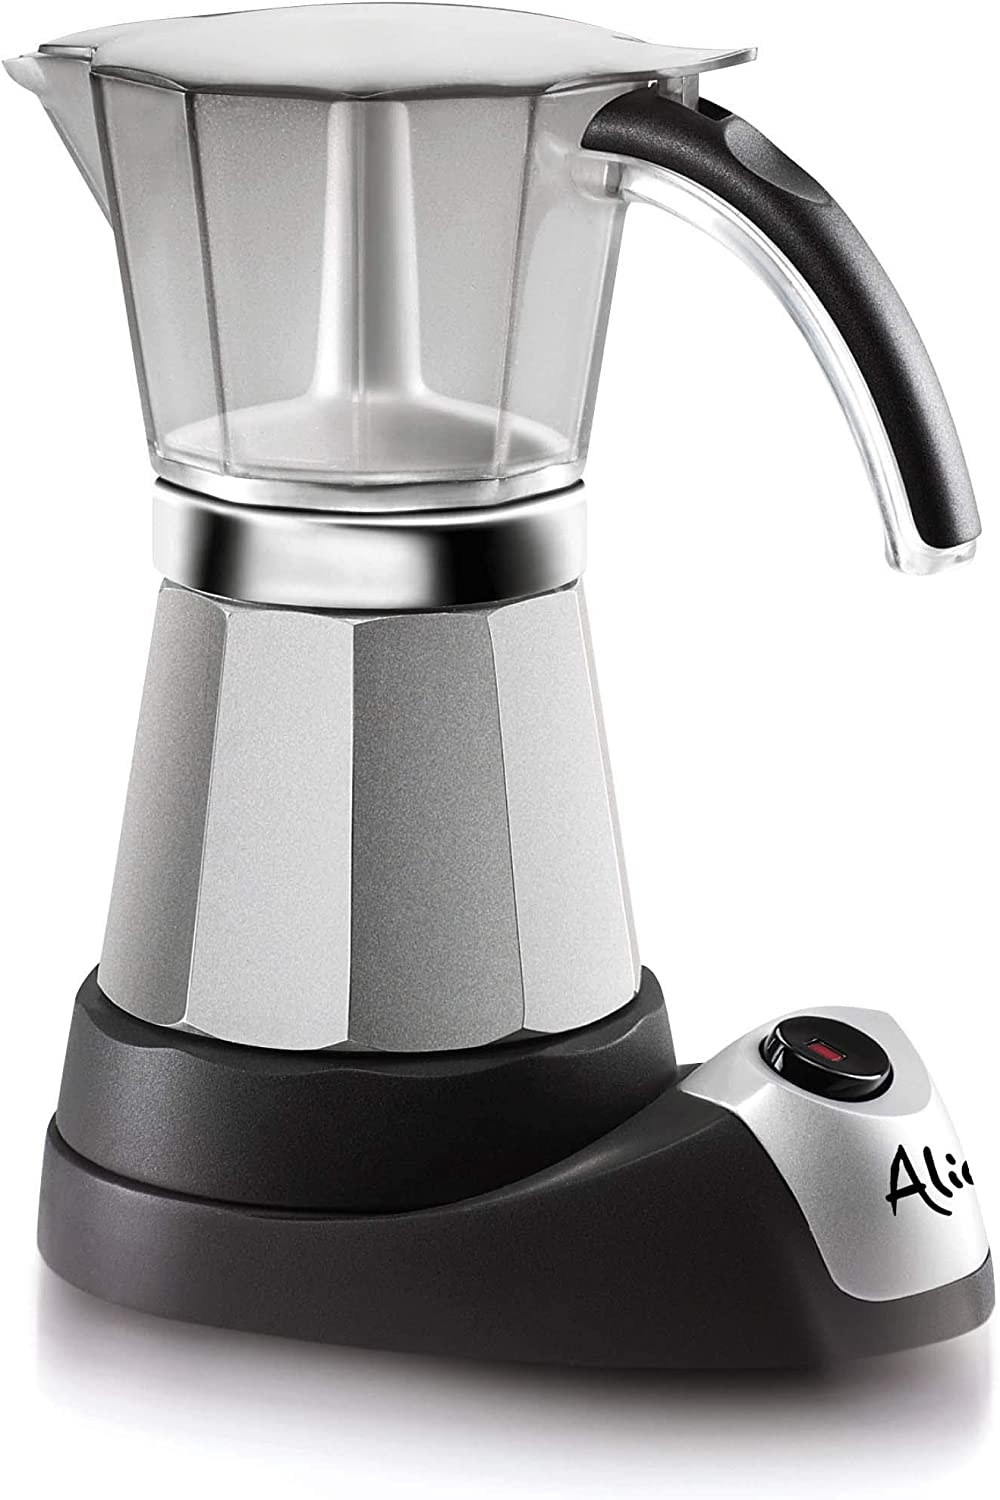 DeLonghi Alicia Electric Moka Coffee Machine EMK6 - Cafetera ...